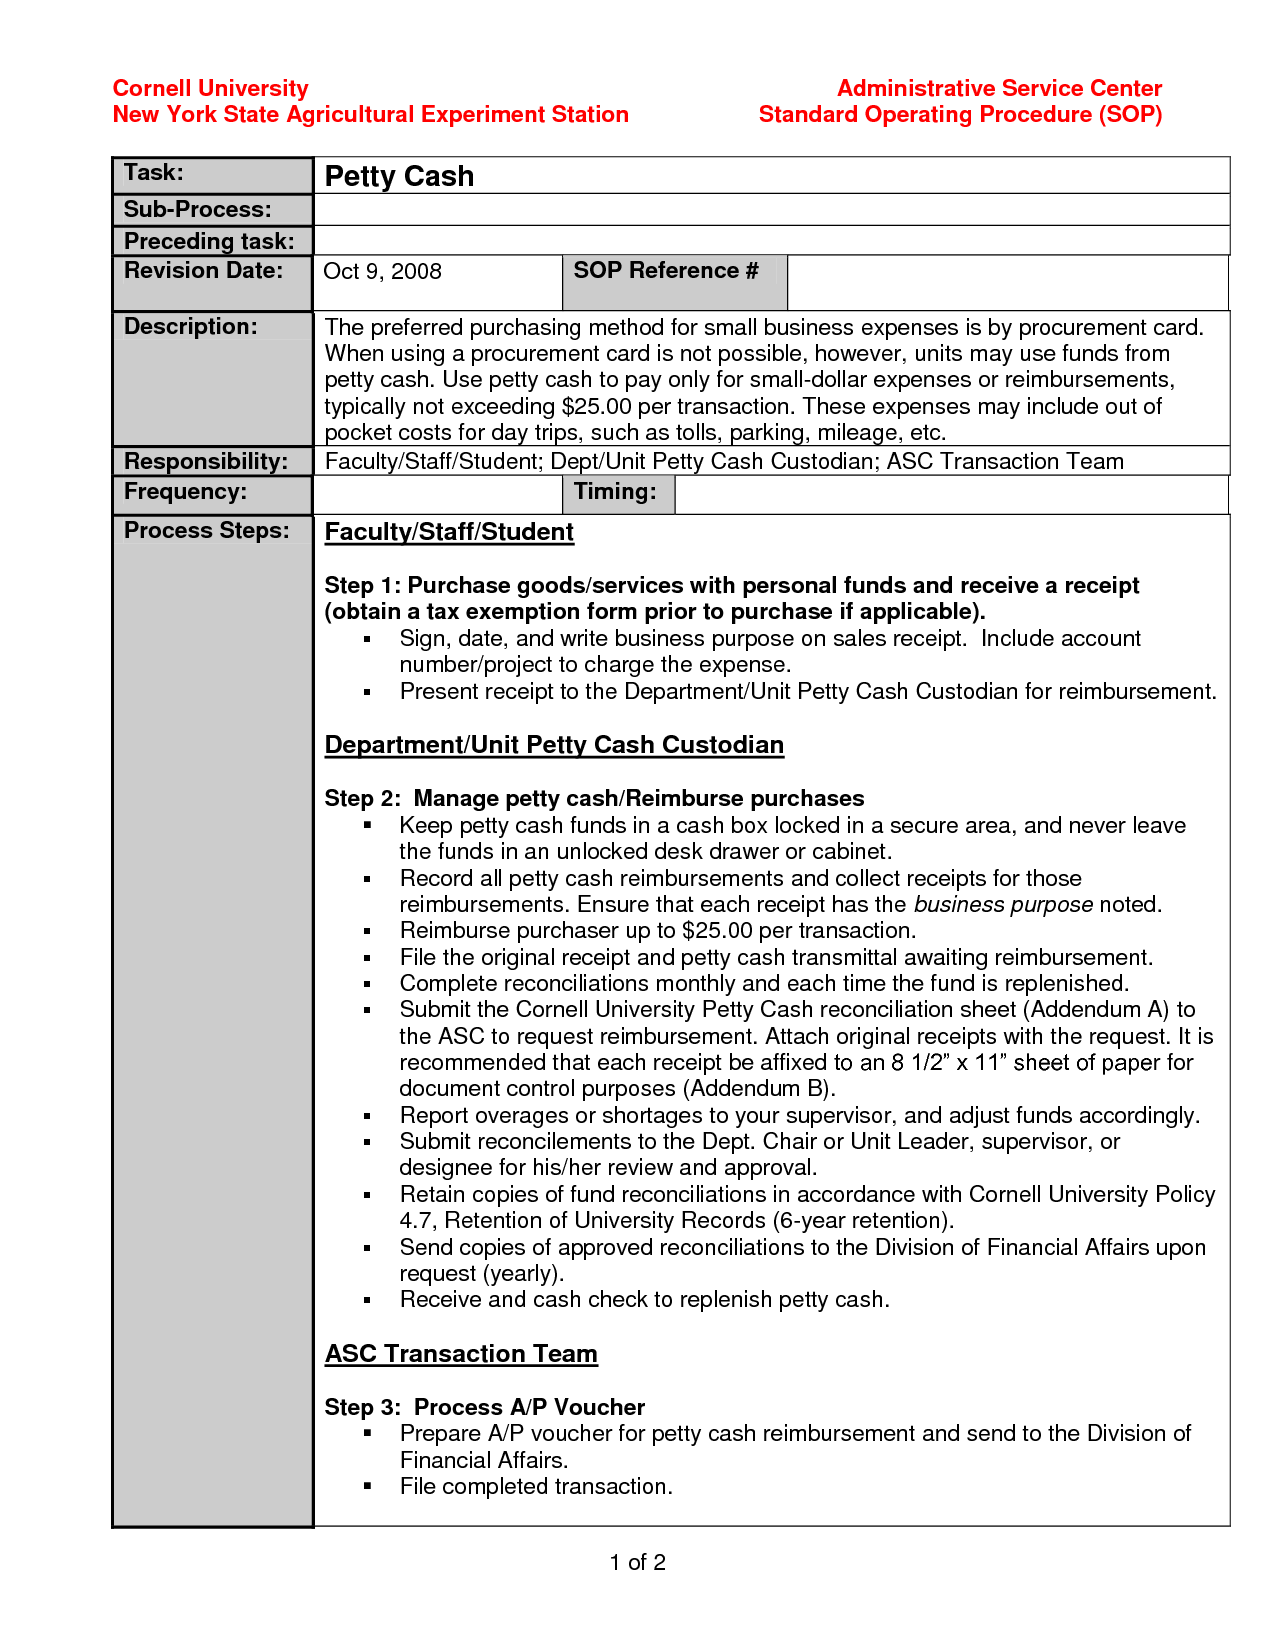 Sop Template Doc Png 1275 1650 Standard Operating Procedure Examples Standard Operating Procedure Standard Operating Procedure Template